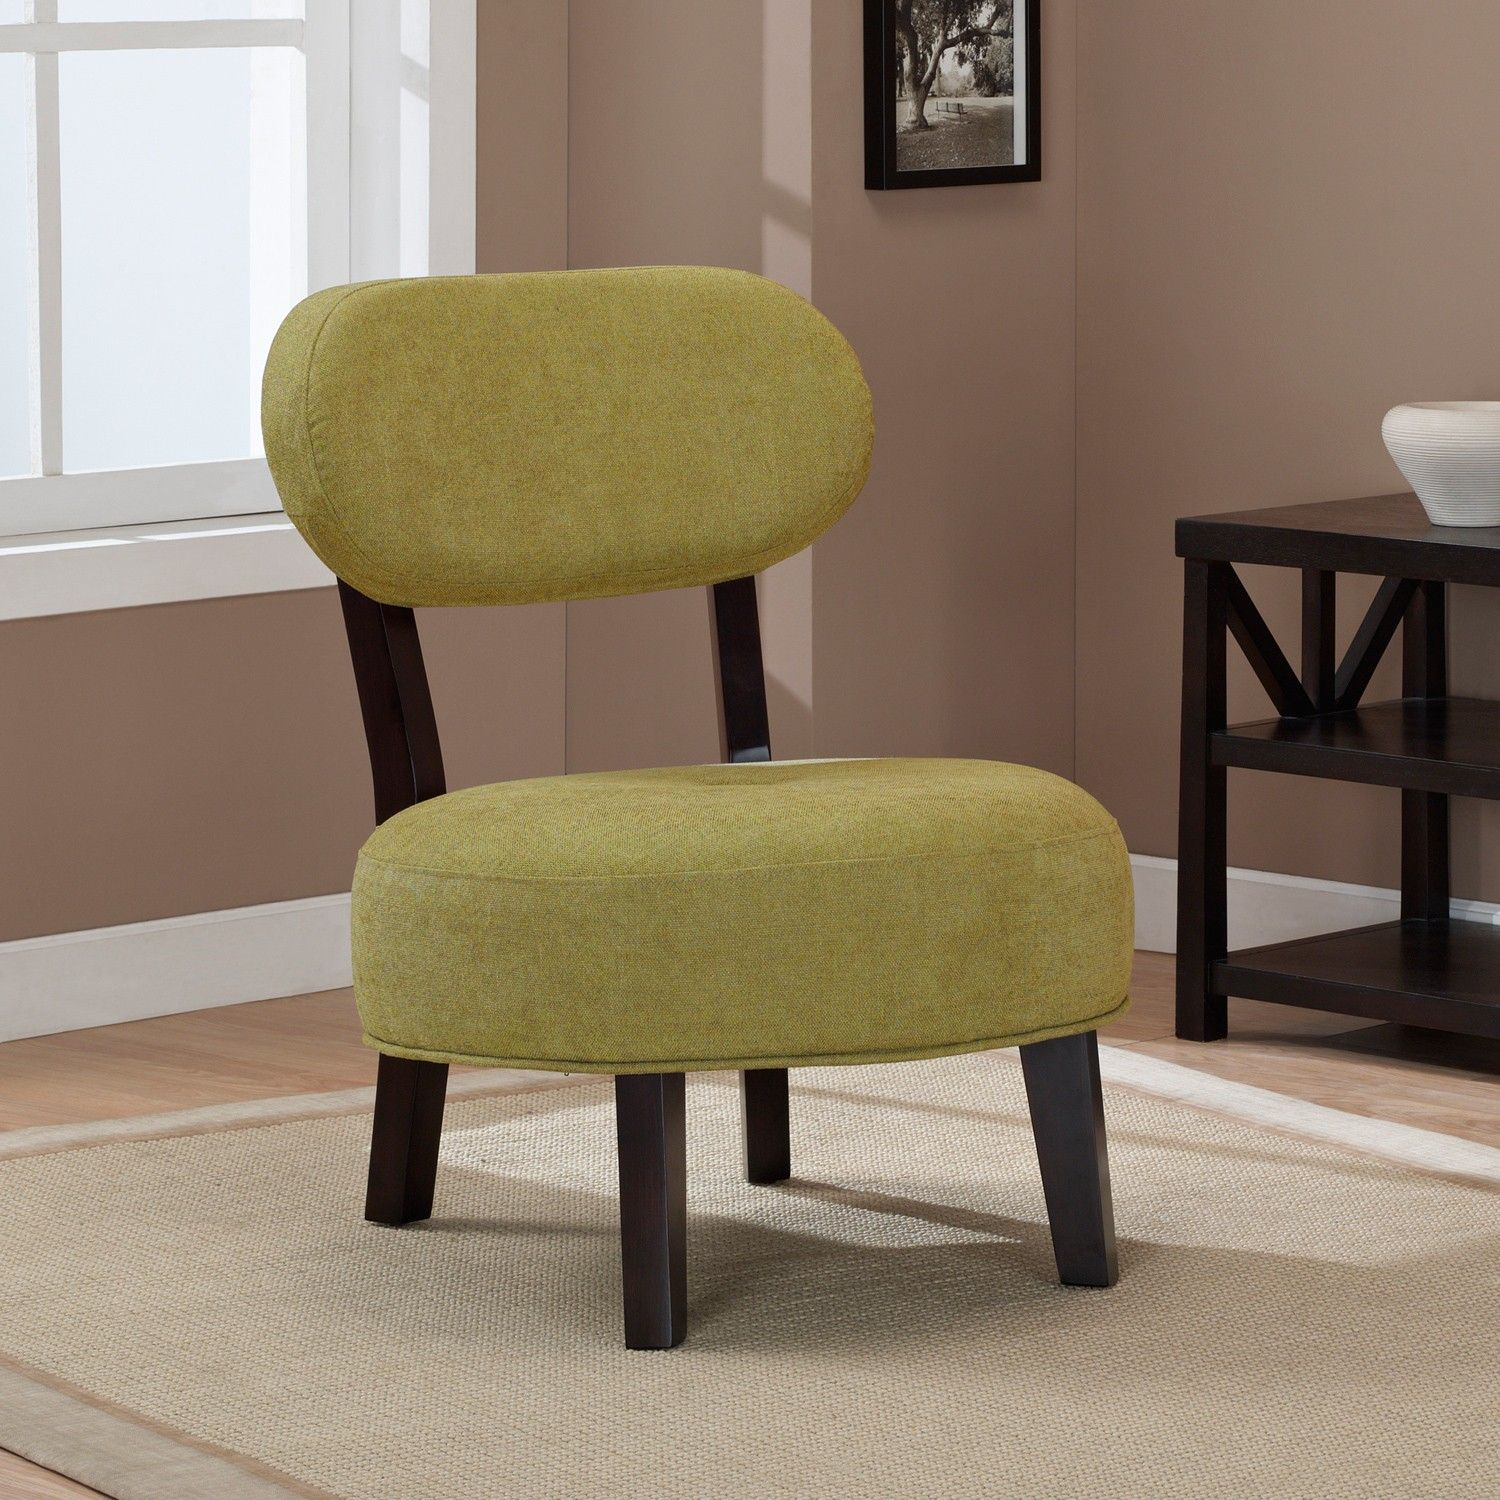 Jupiter Artichoke Chair Overstock Com Shopping The Best Deals